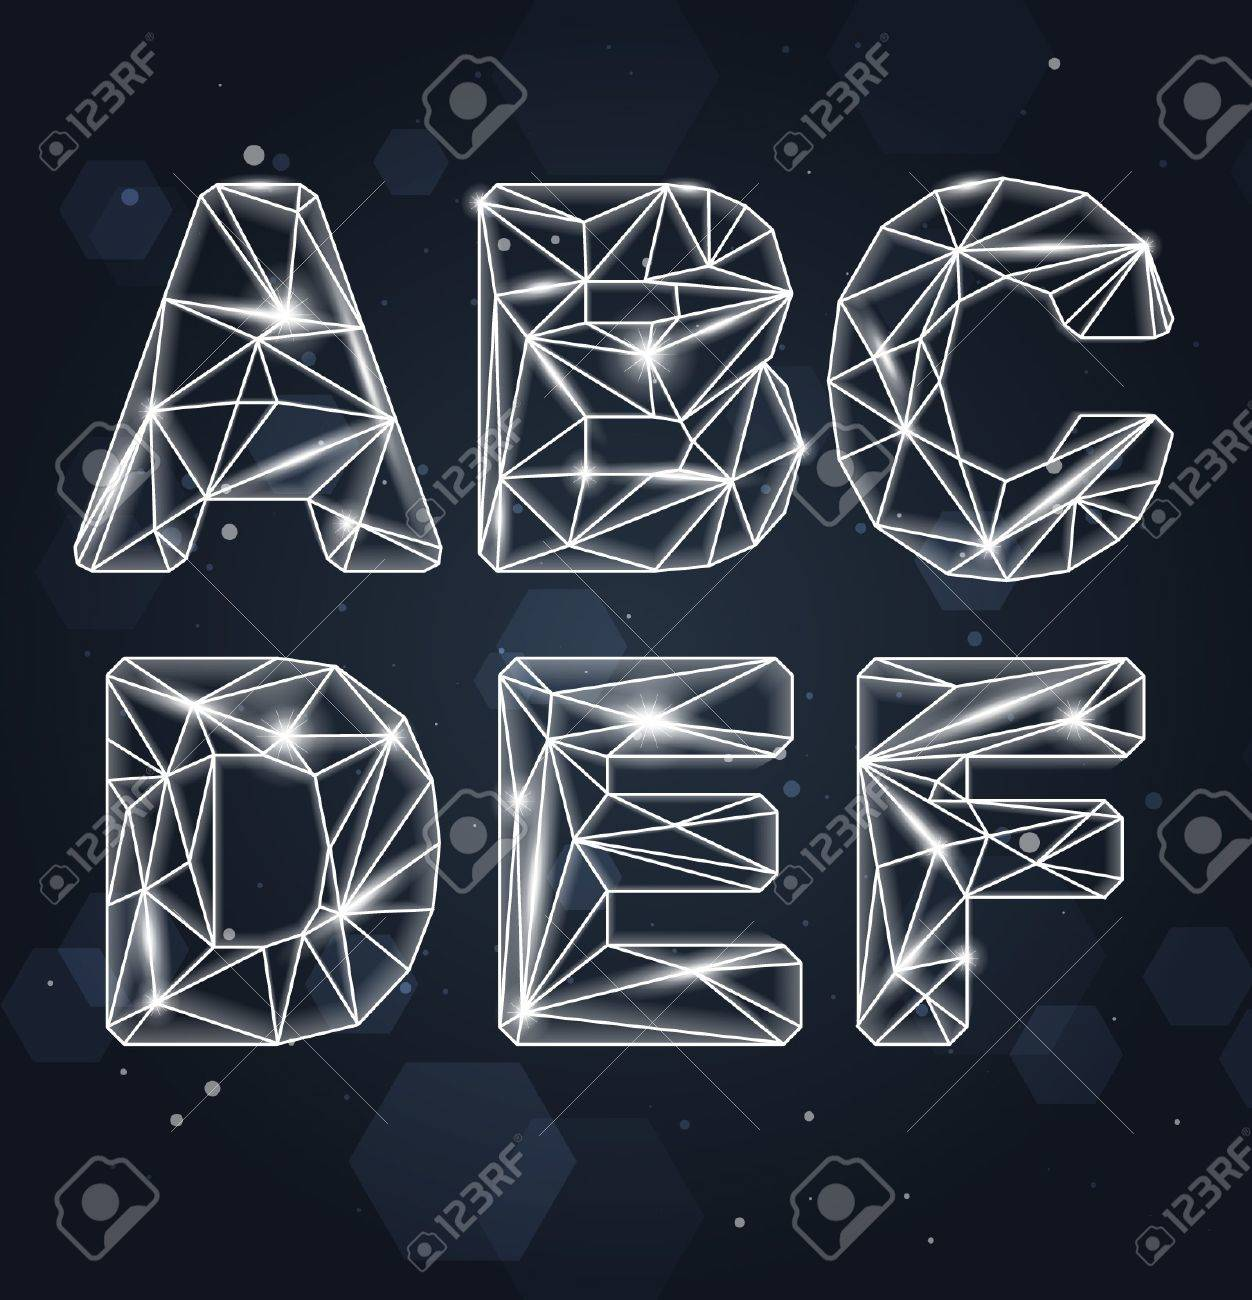 Constellation Geometric Font A-F Stock Vector - 16873010